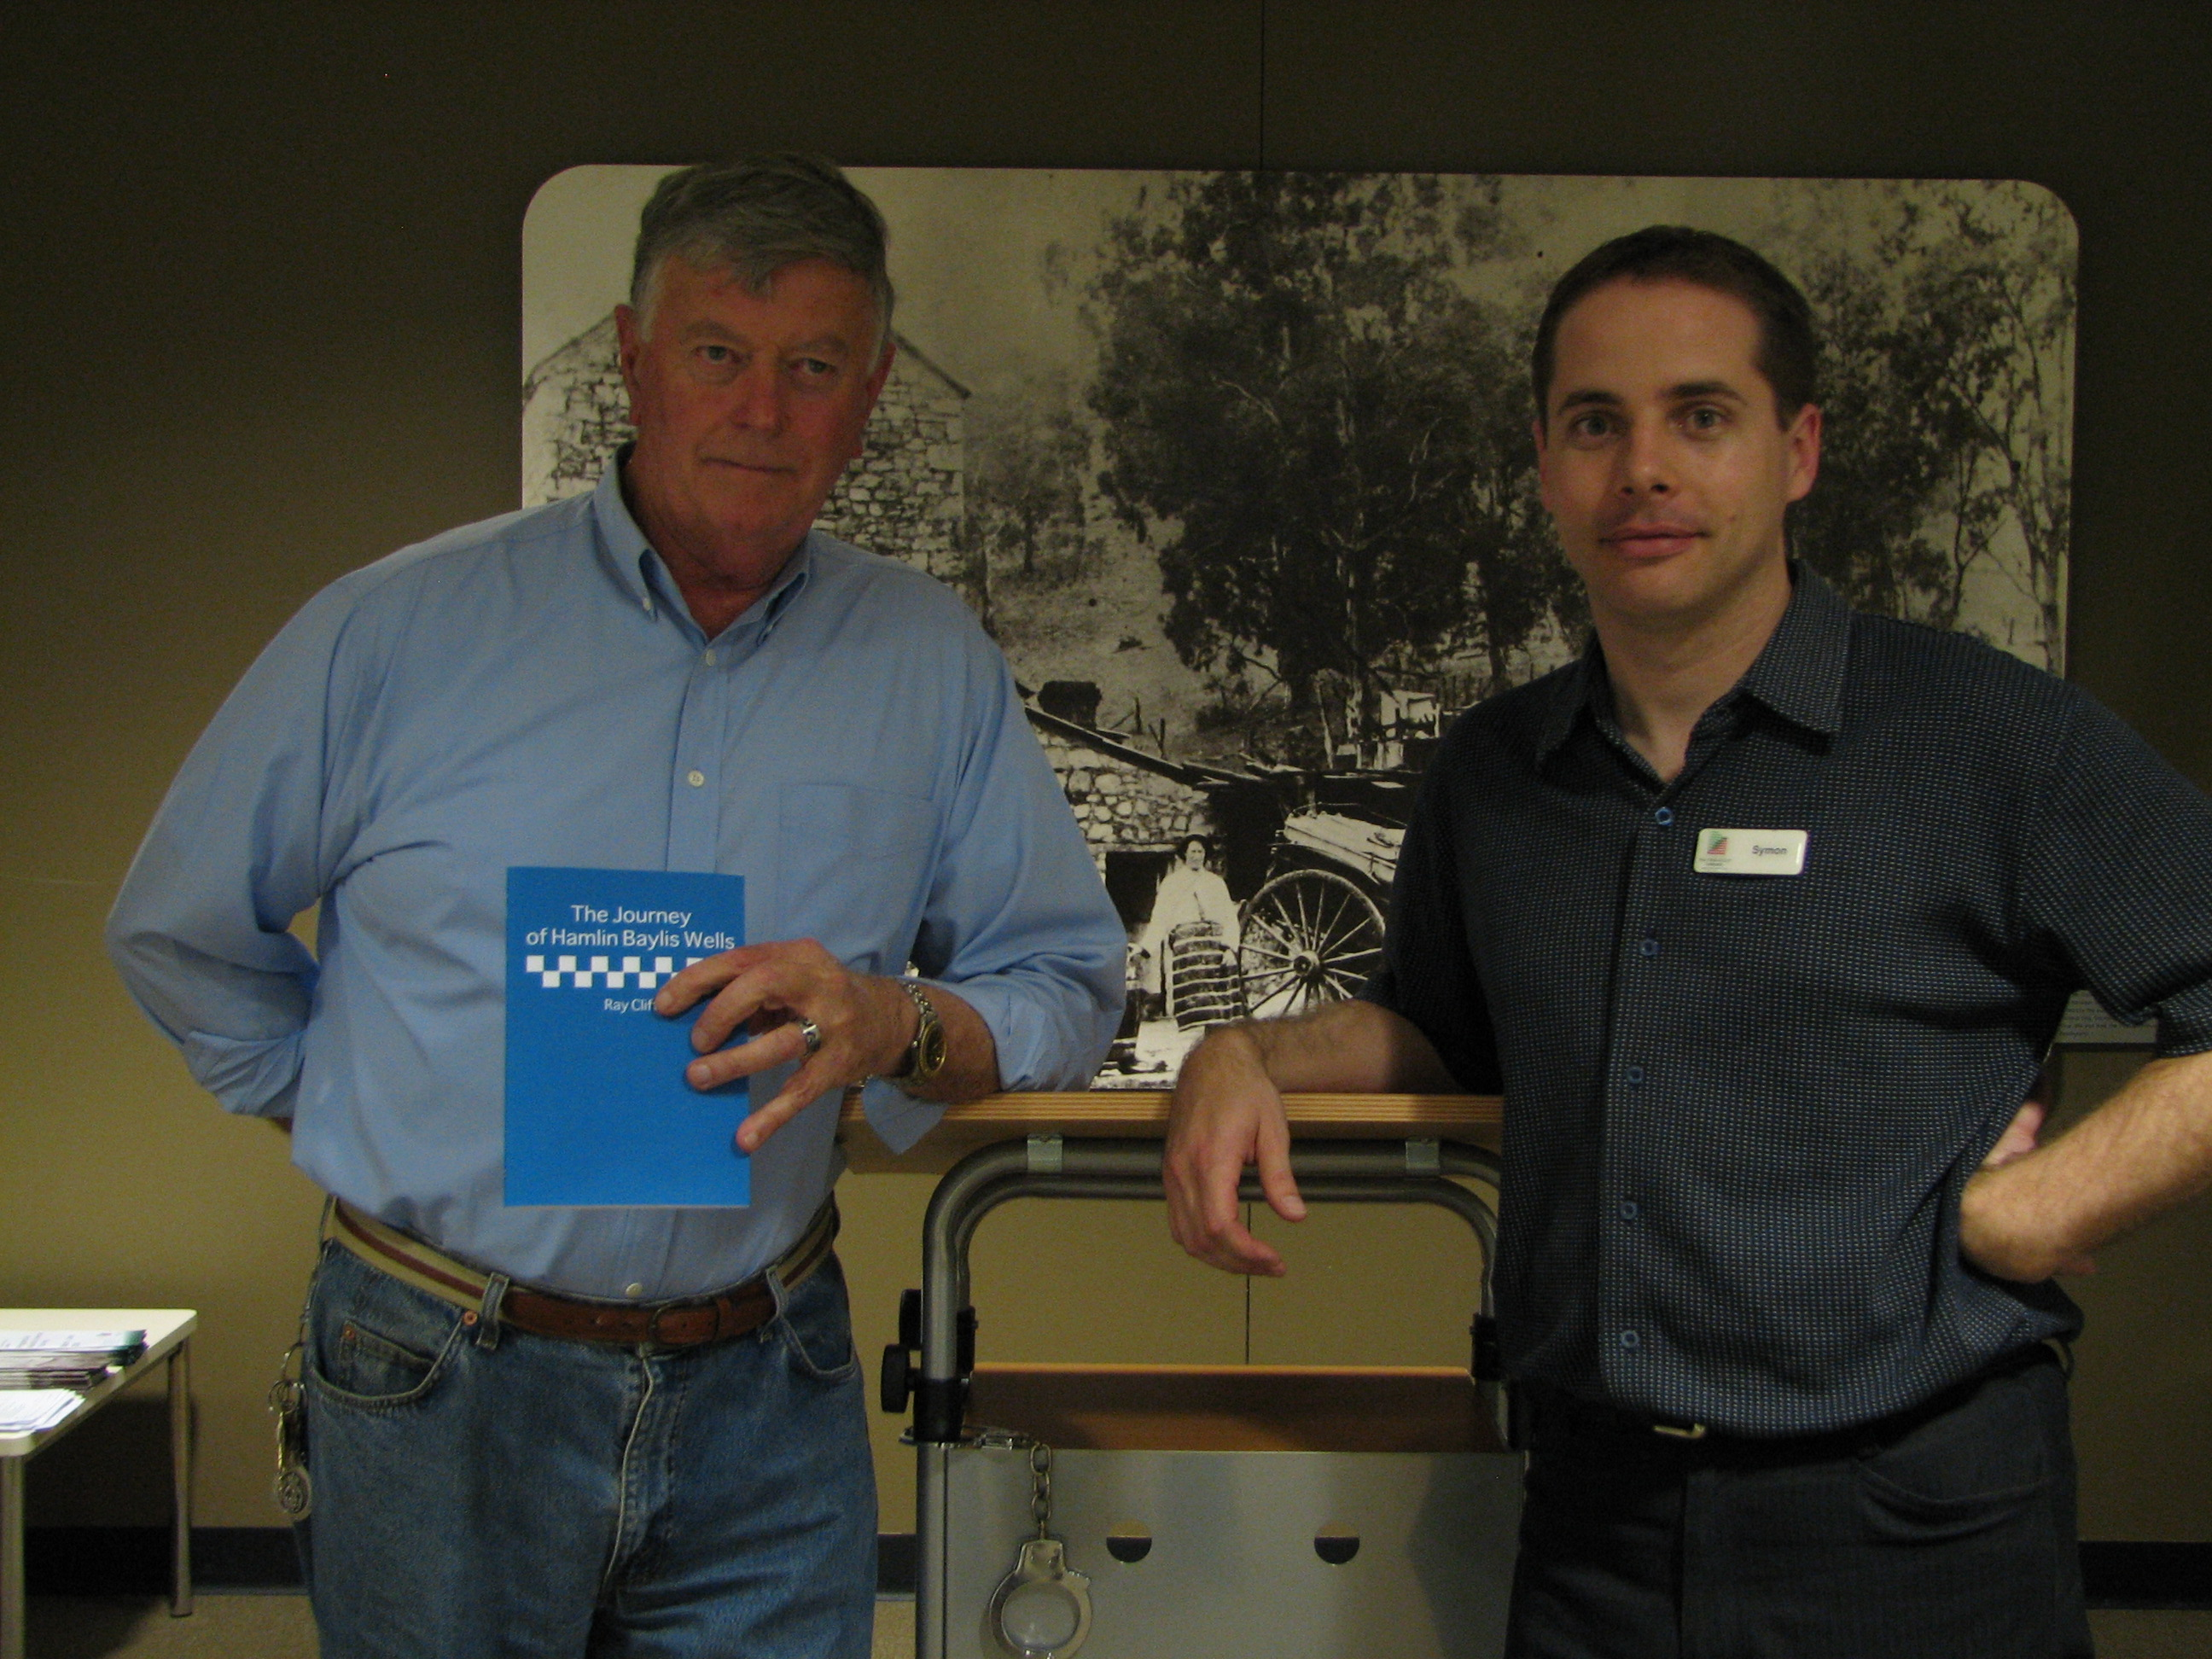 Ray Clift at the launch of his last book, with Symon from the CTTG Library programs team